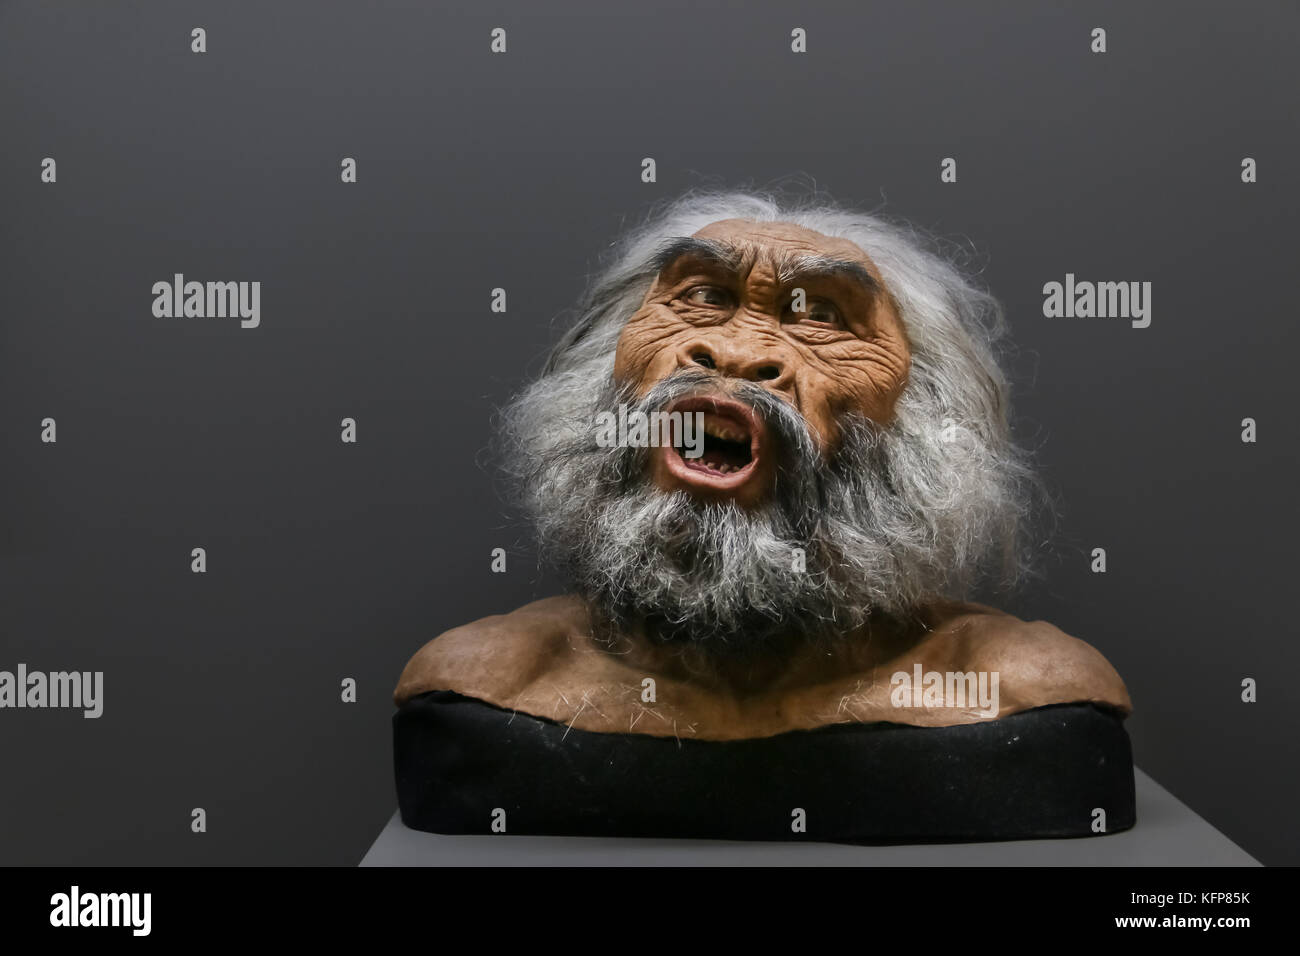 Wax face of primitive person at a historical museum - Stock Image